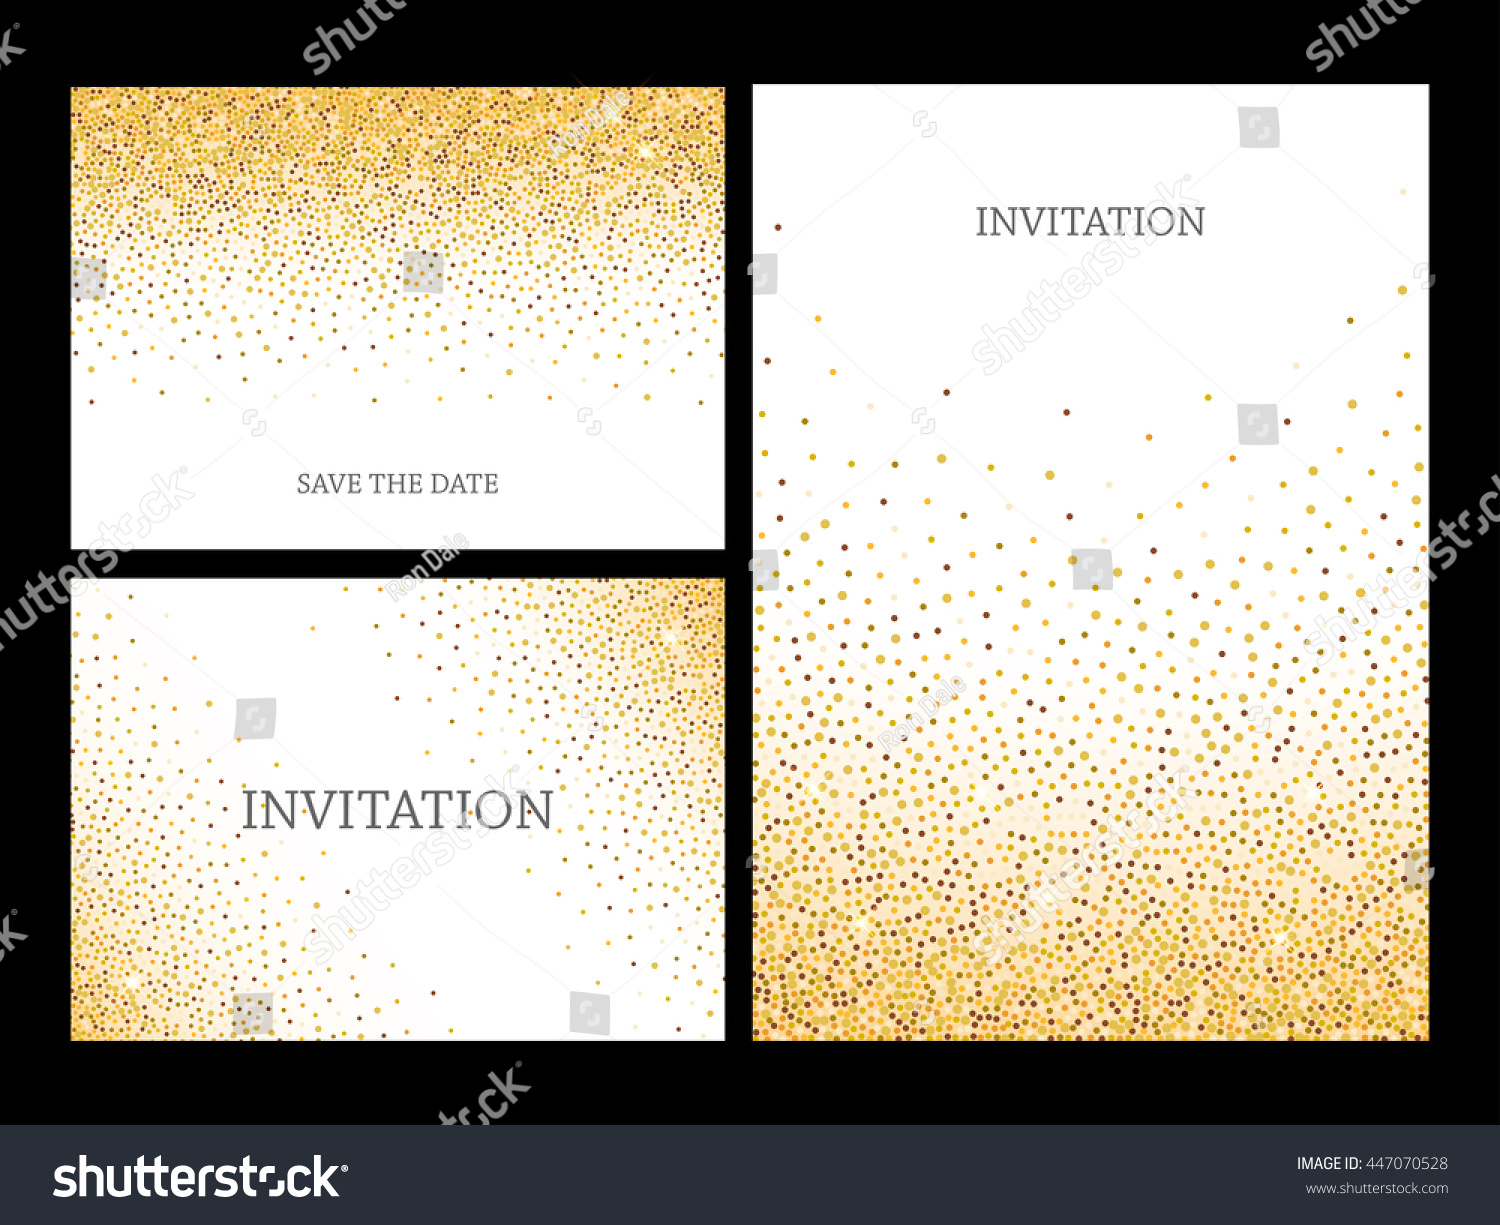 Invitation letters template gold glitter confetti stock vector invitation letters template with gold glitter confetti background festive greeting cards design for event stopboris Images